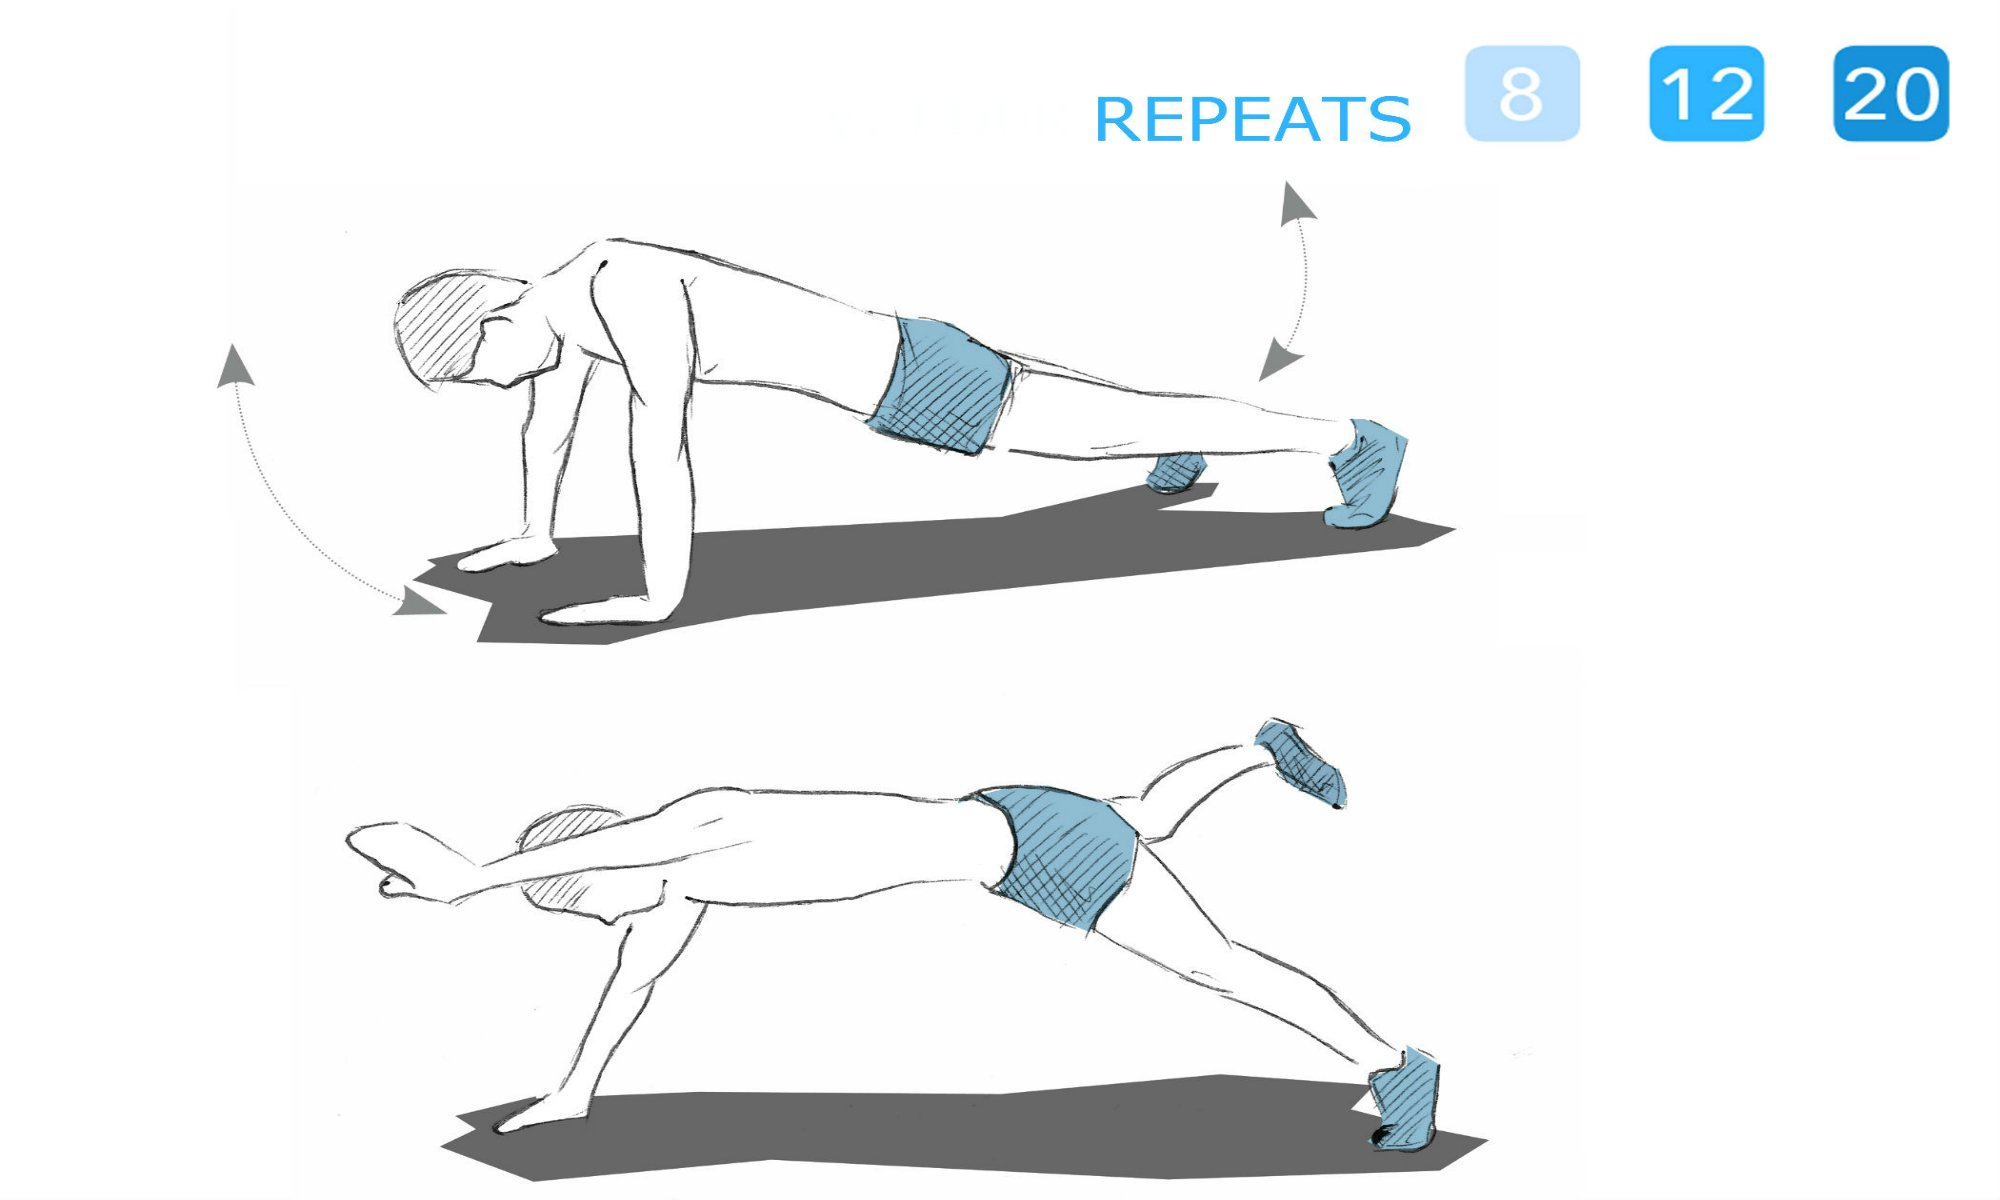 The Superman exercise.